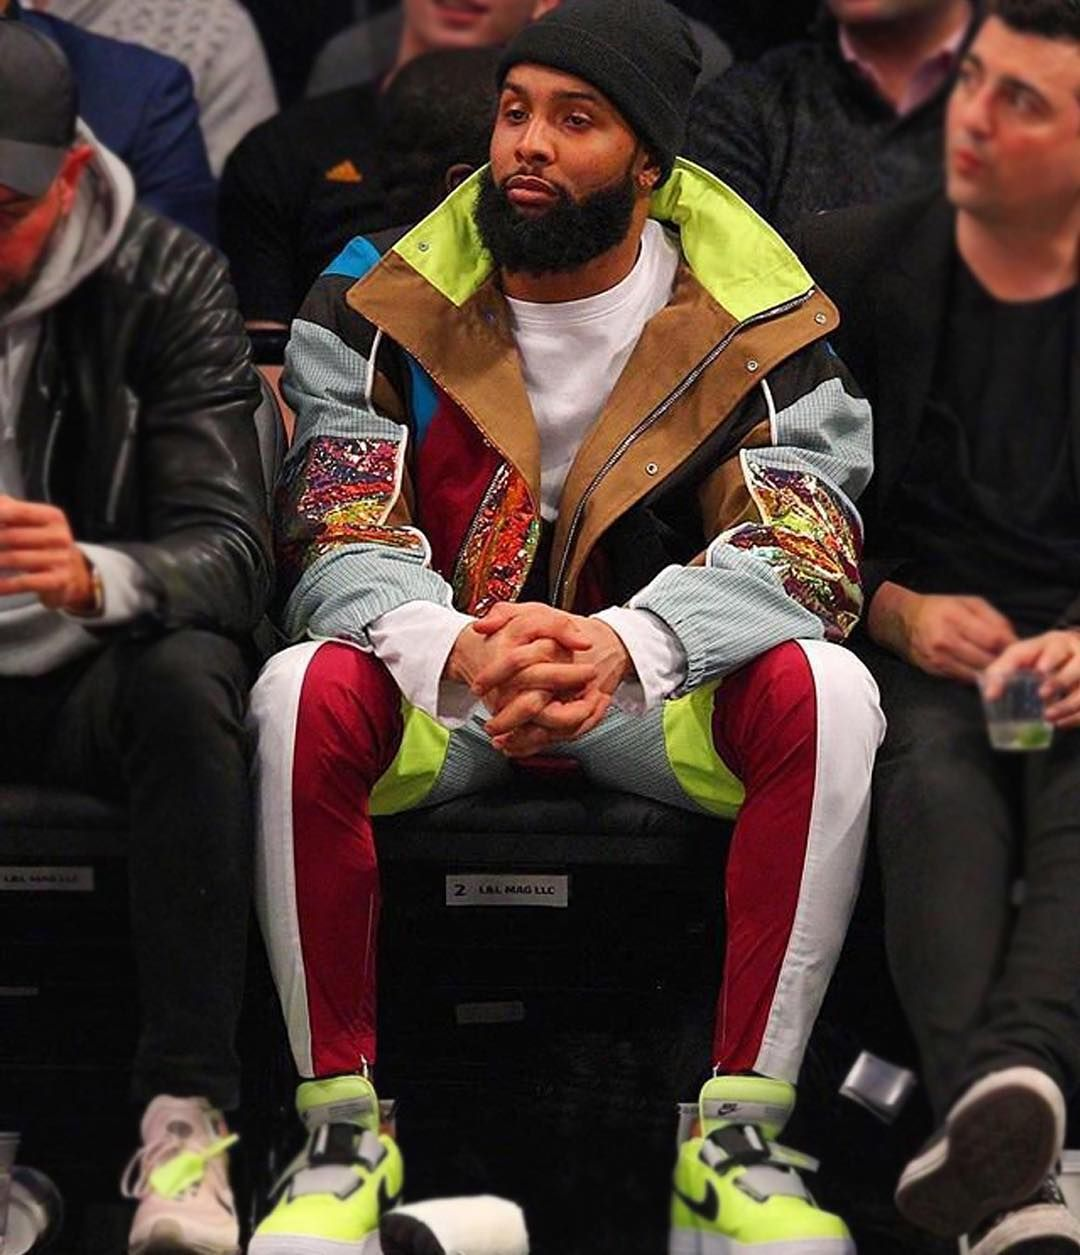 American football player @obj spotted